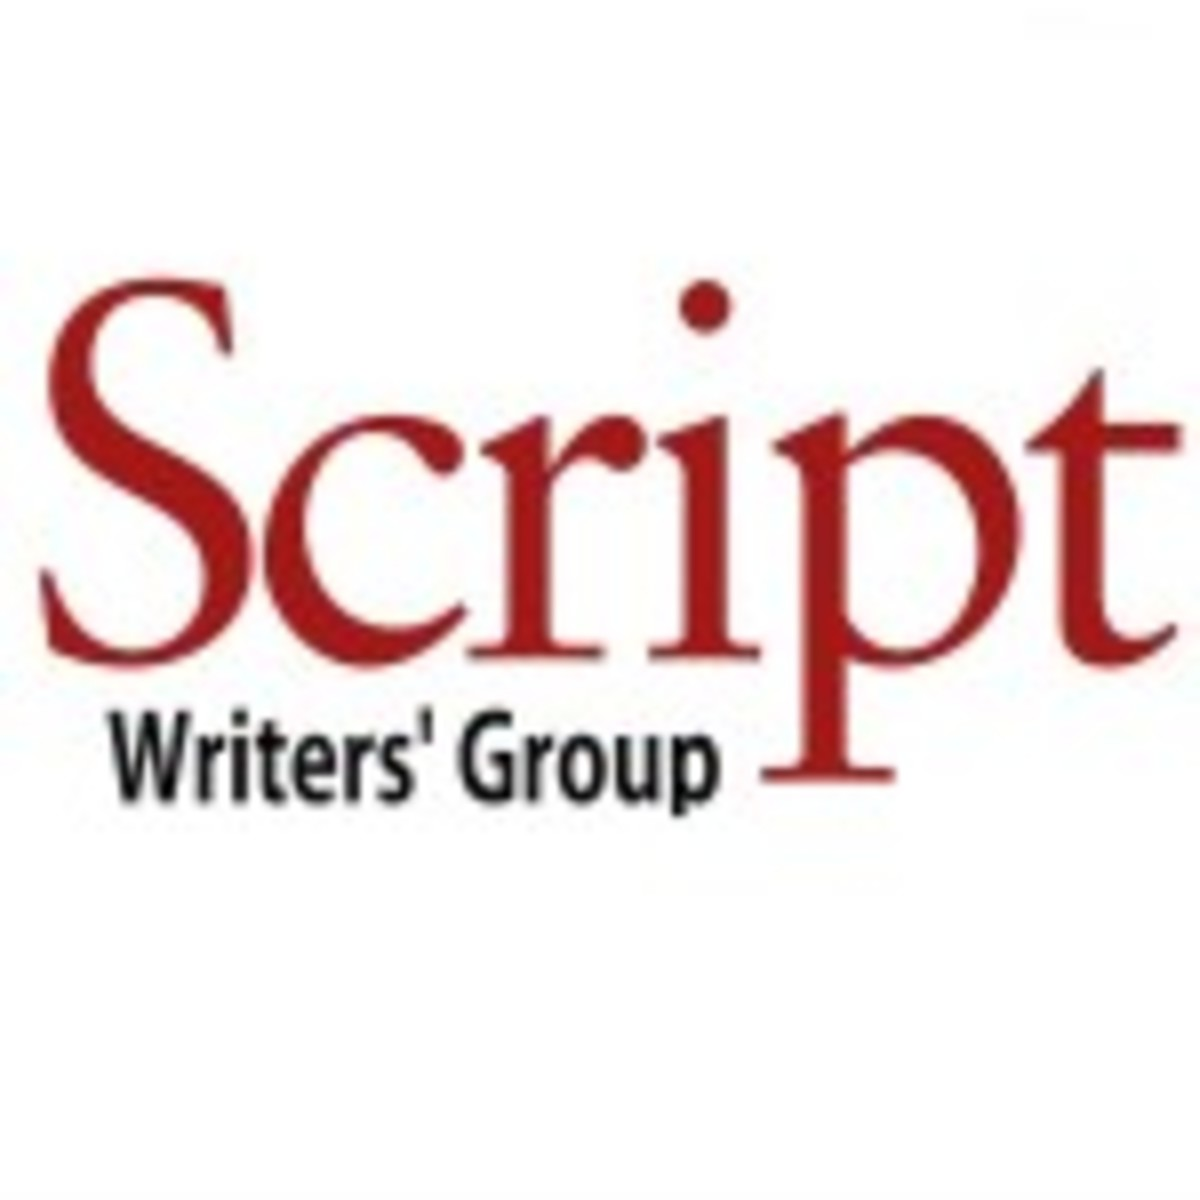 Script Logo Writers Group small